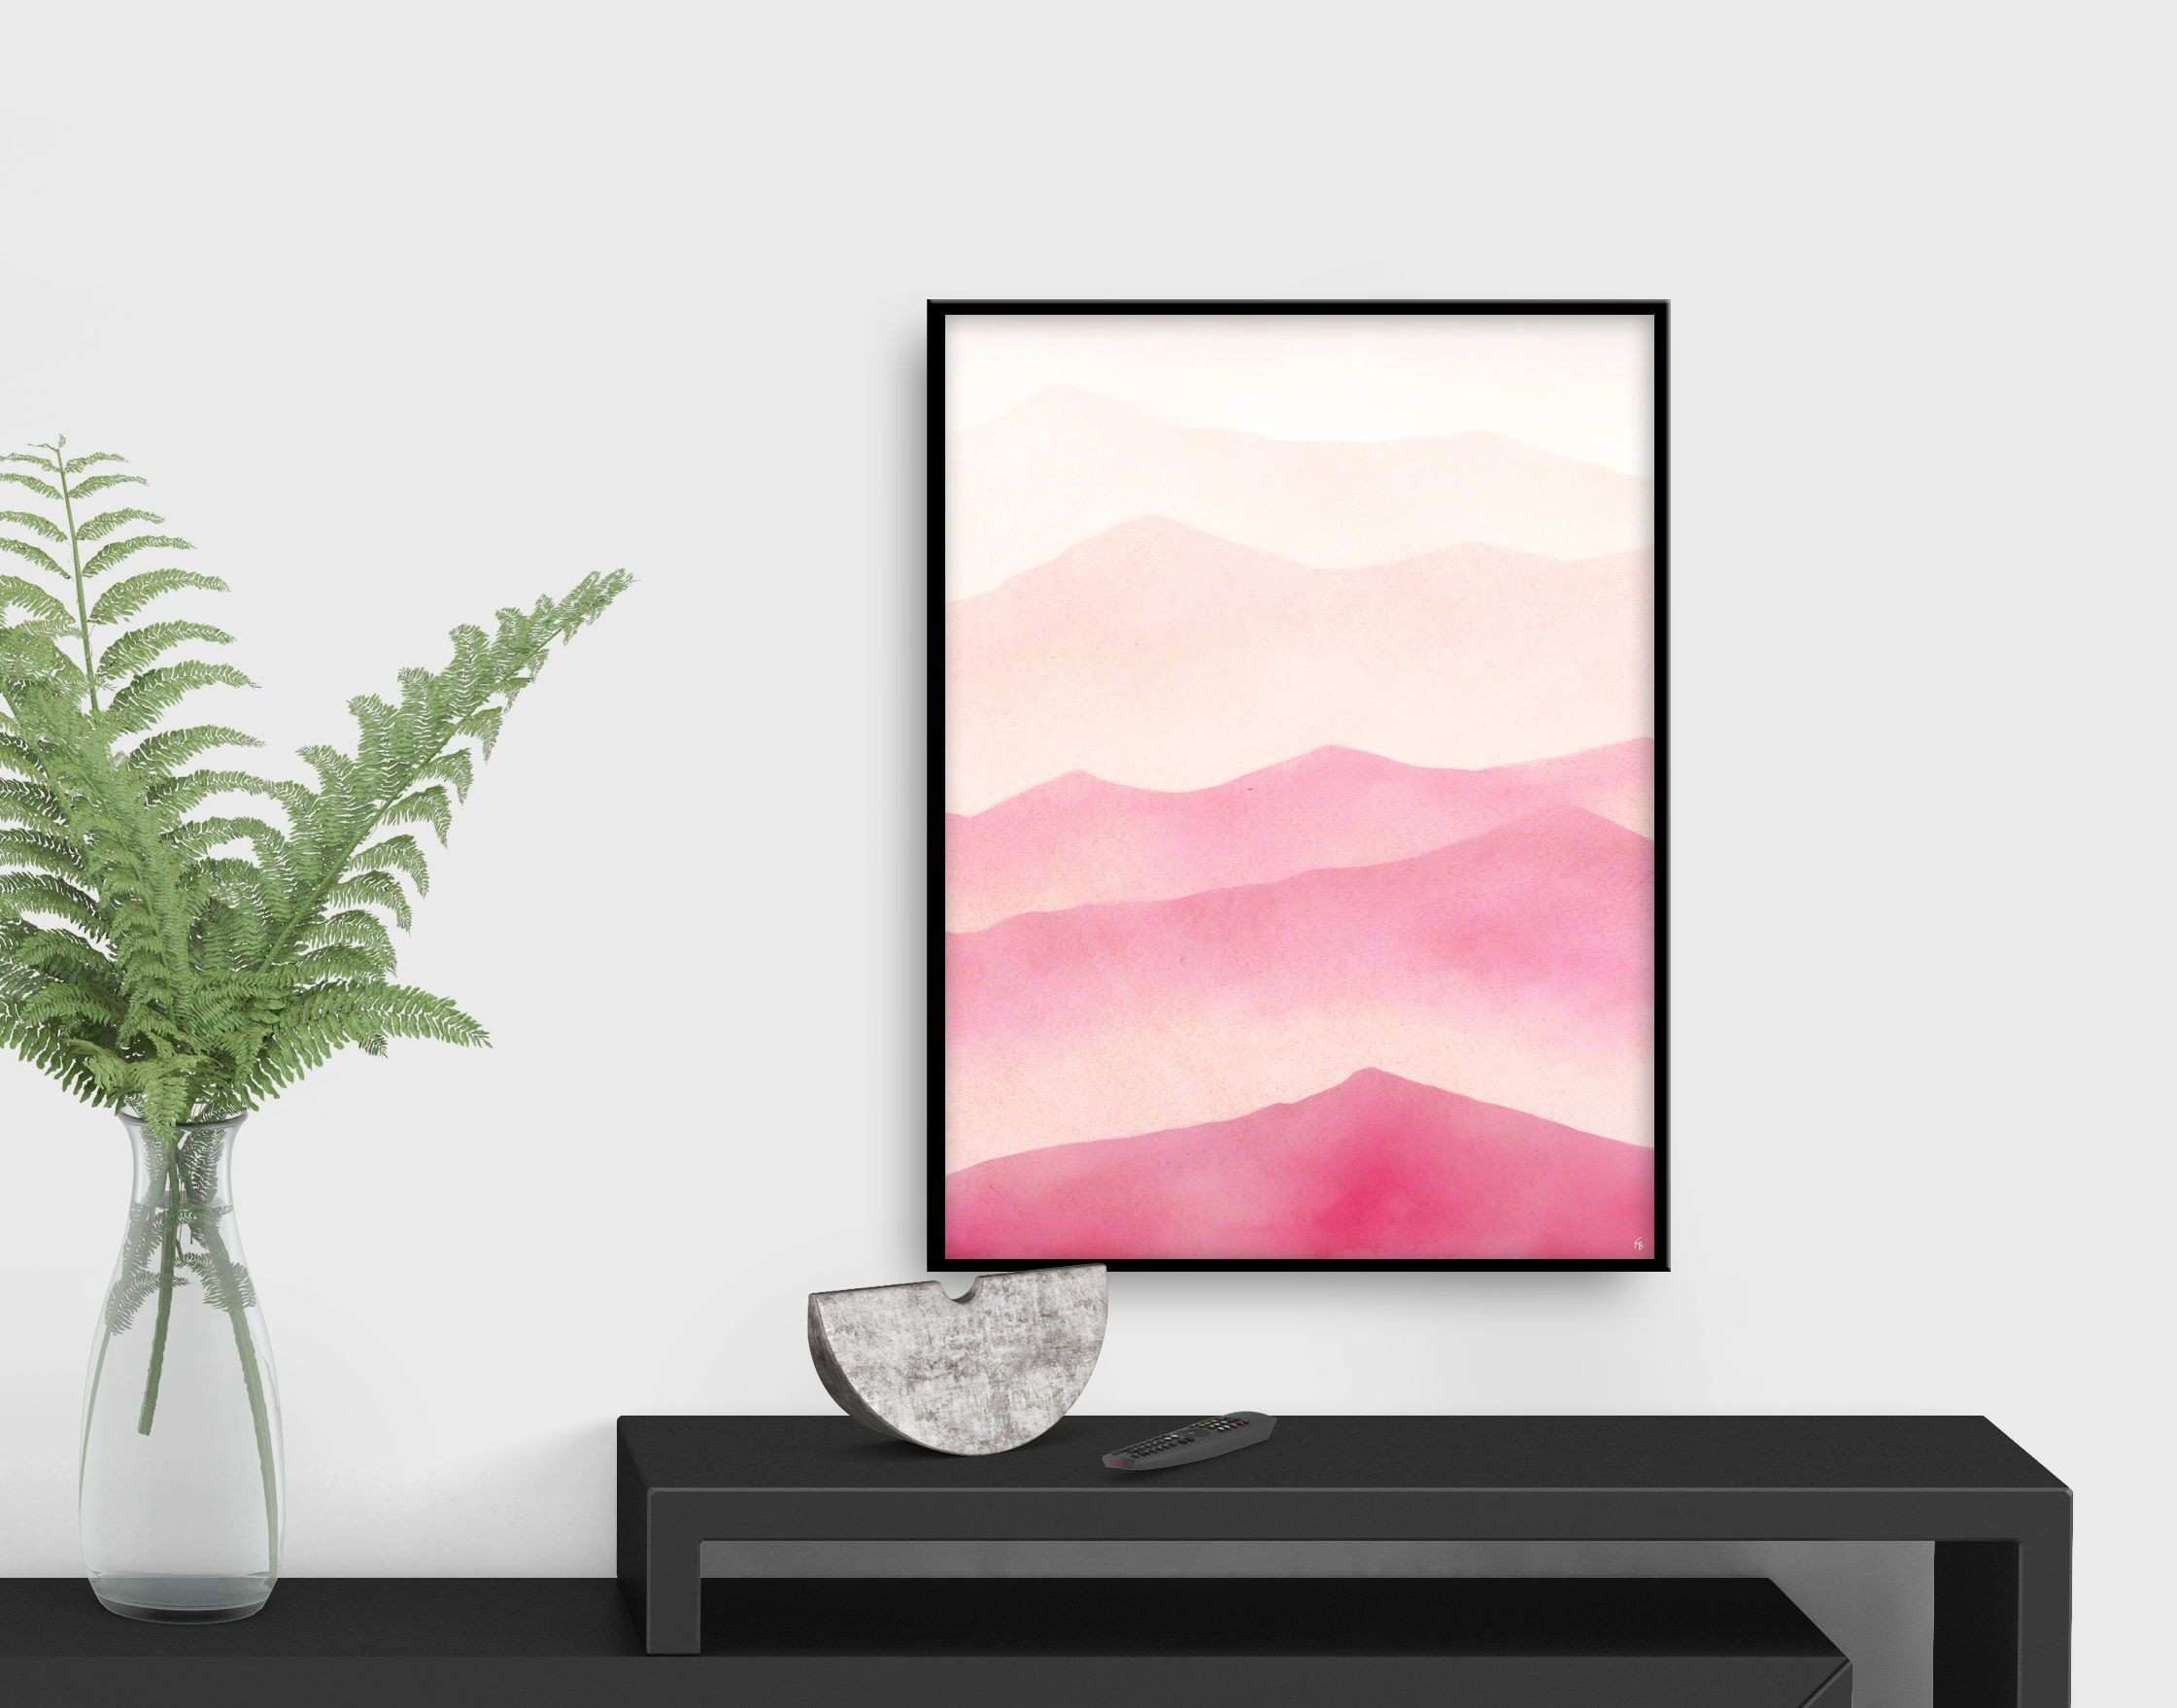 Breath new life into your decor Modern pink abstract by FraBorArt